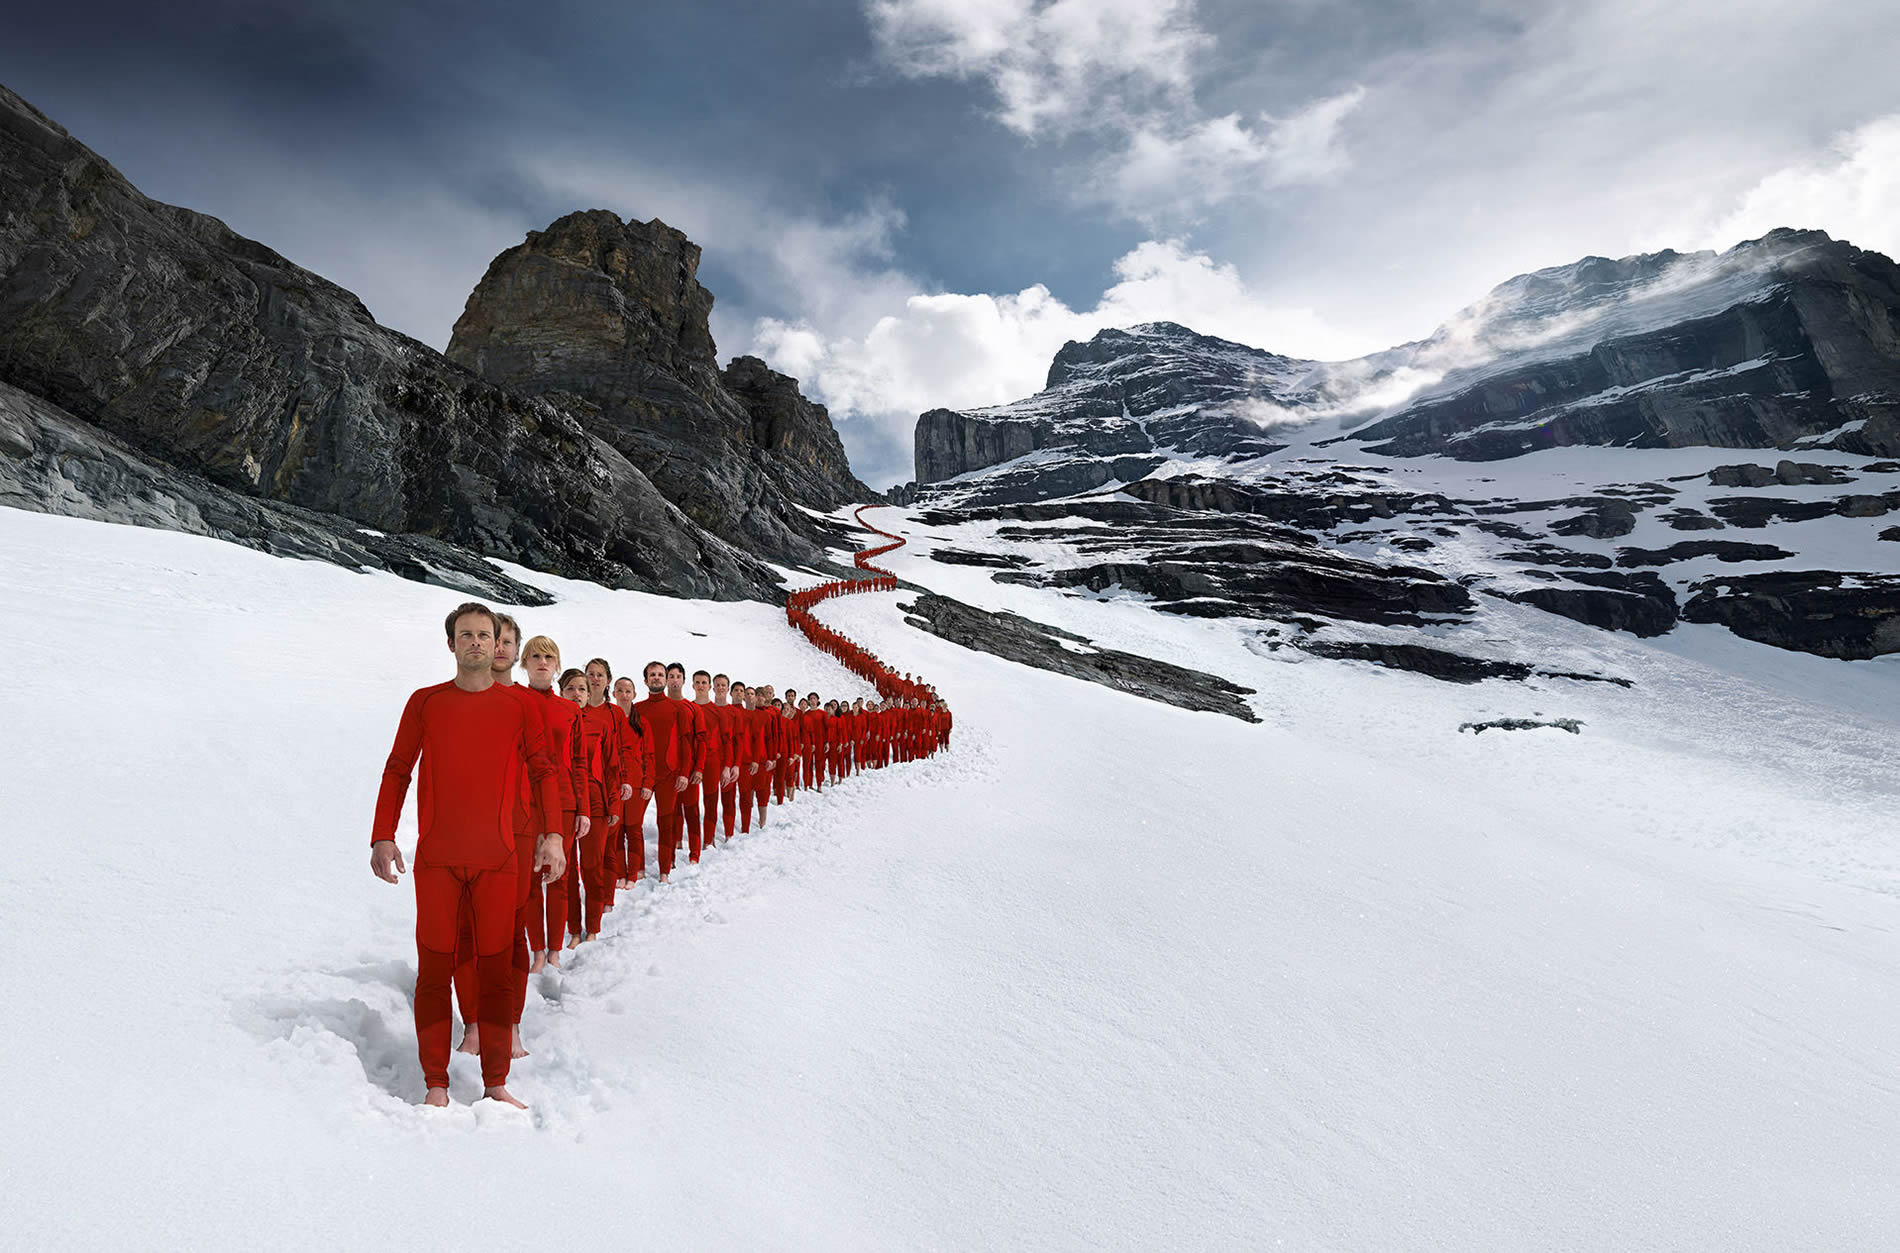 Beautiful Photos of Mountaineers in the Alps